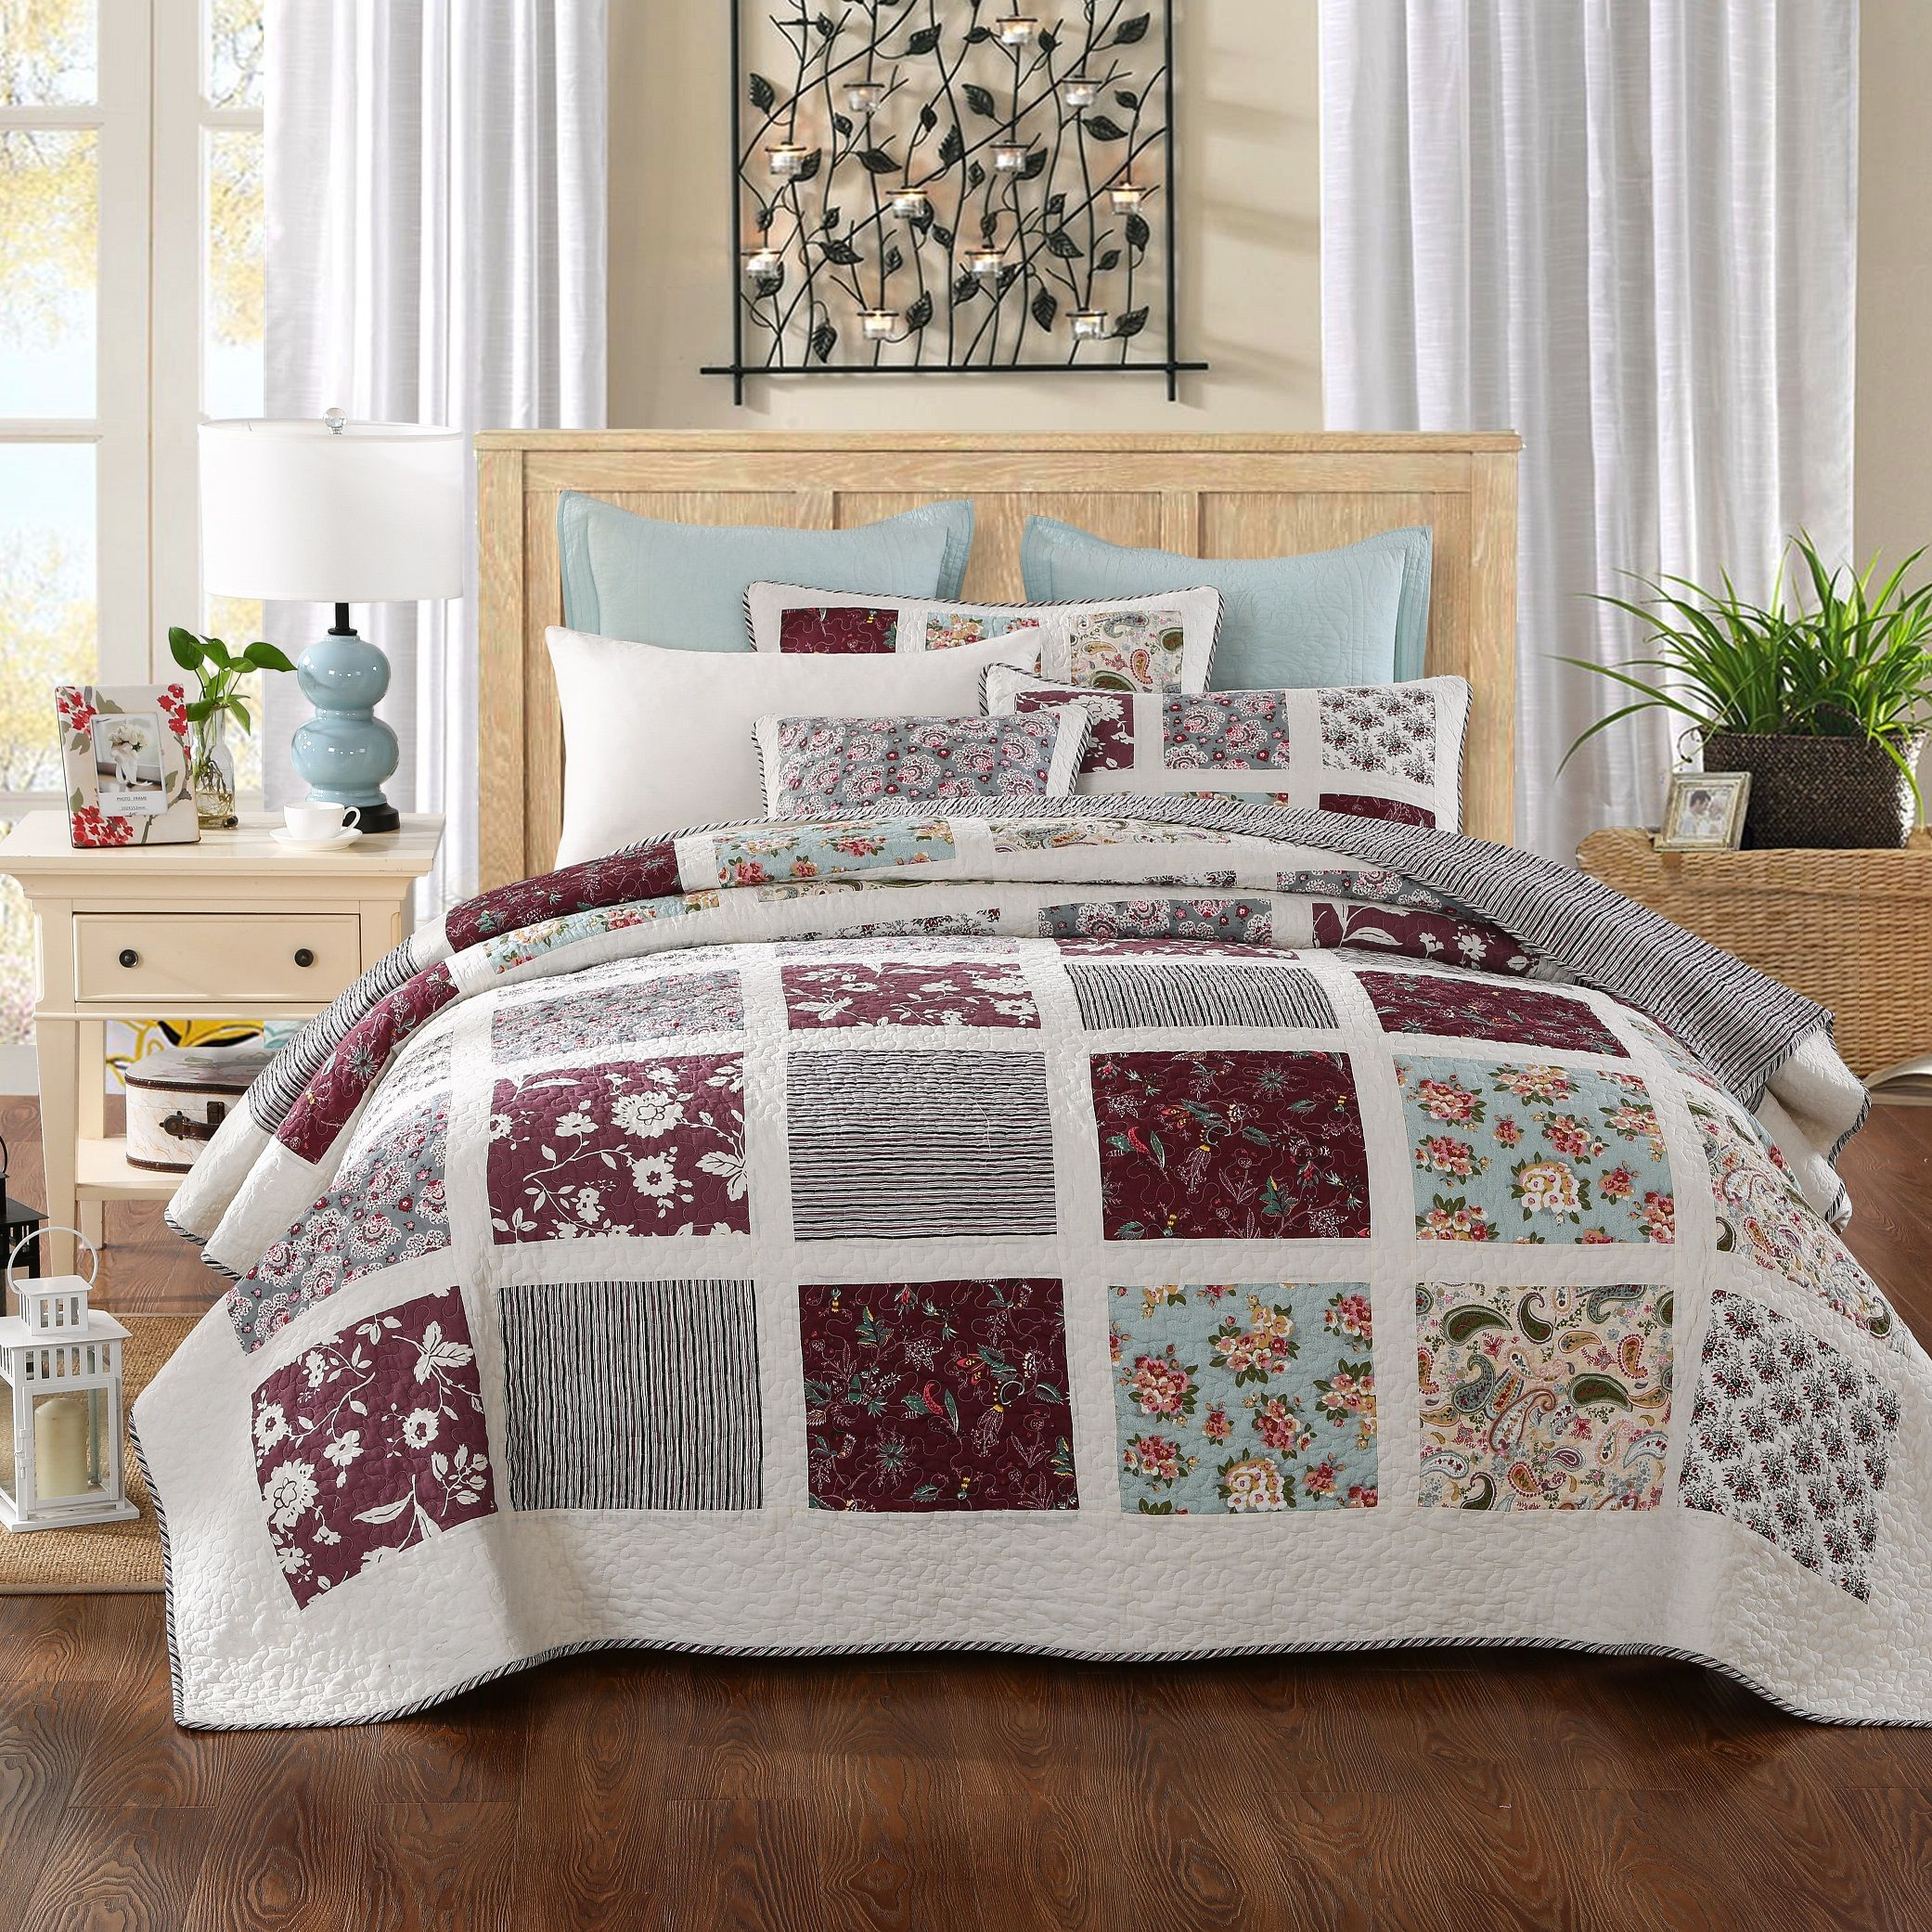 bedding home bed set quilt qlt bath coverlets quilts p cannon floral piece prod quilted bedspread print wid hei